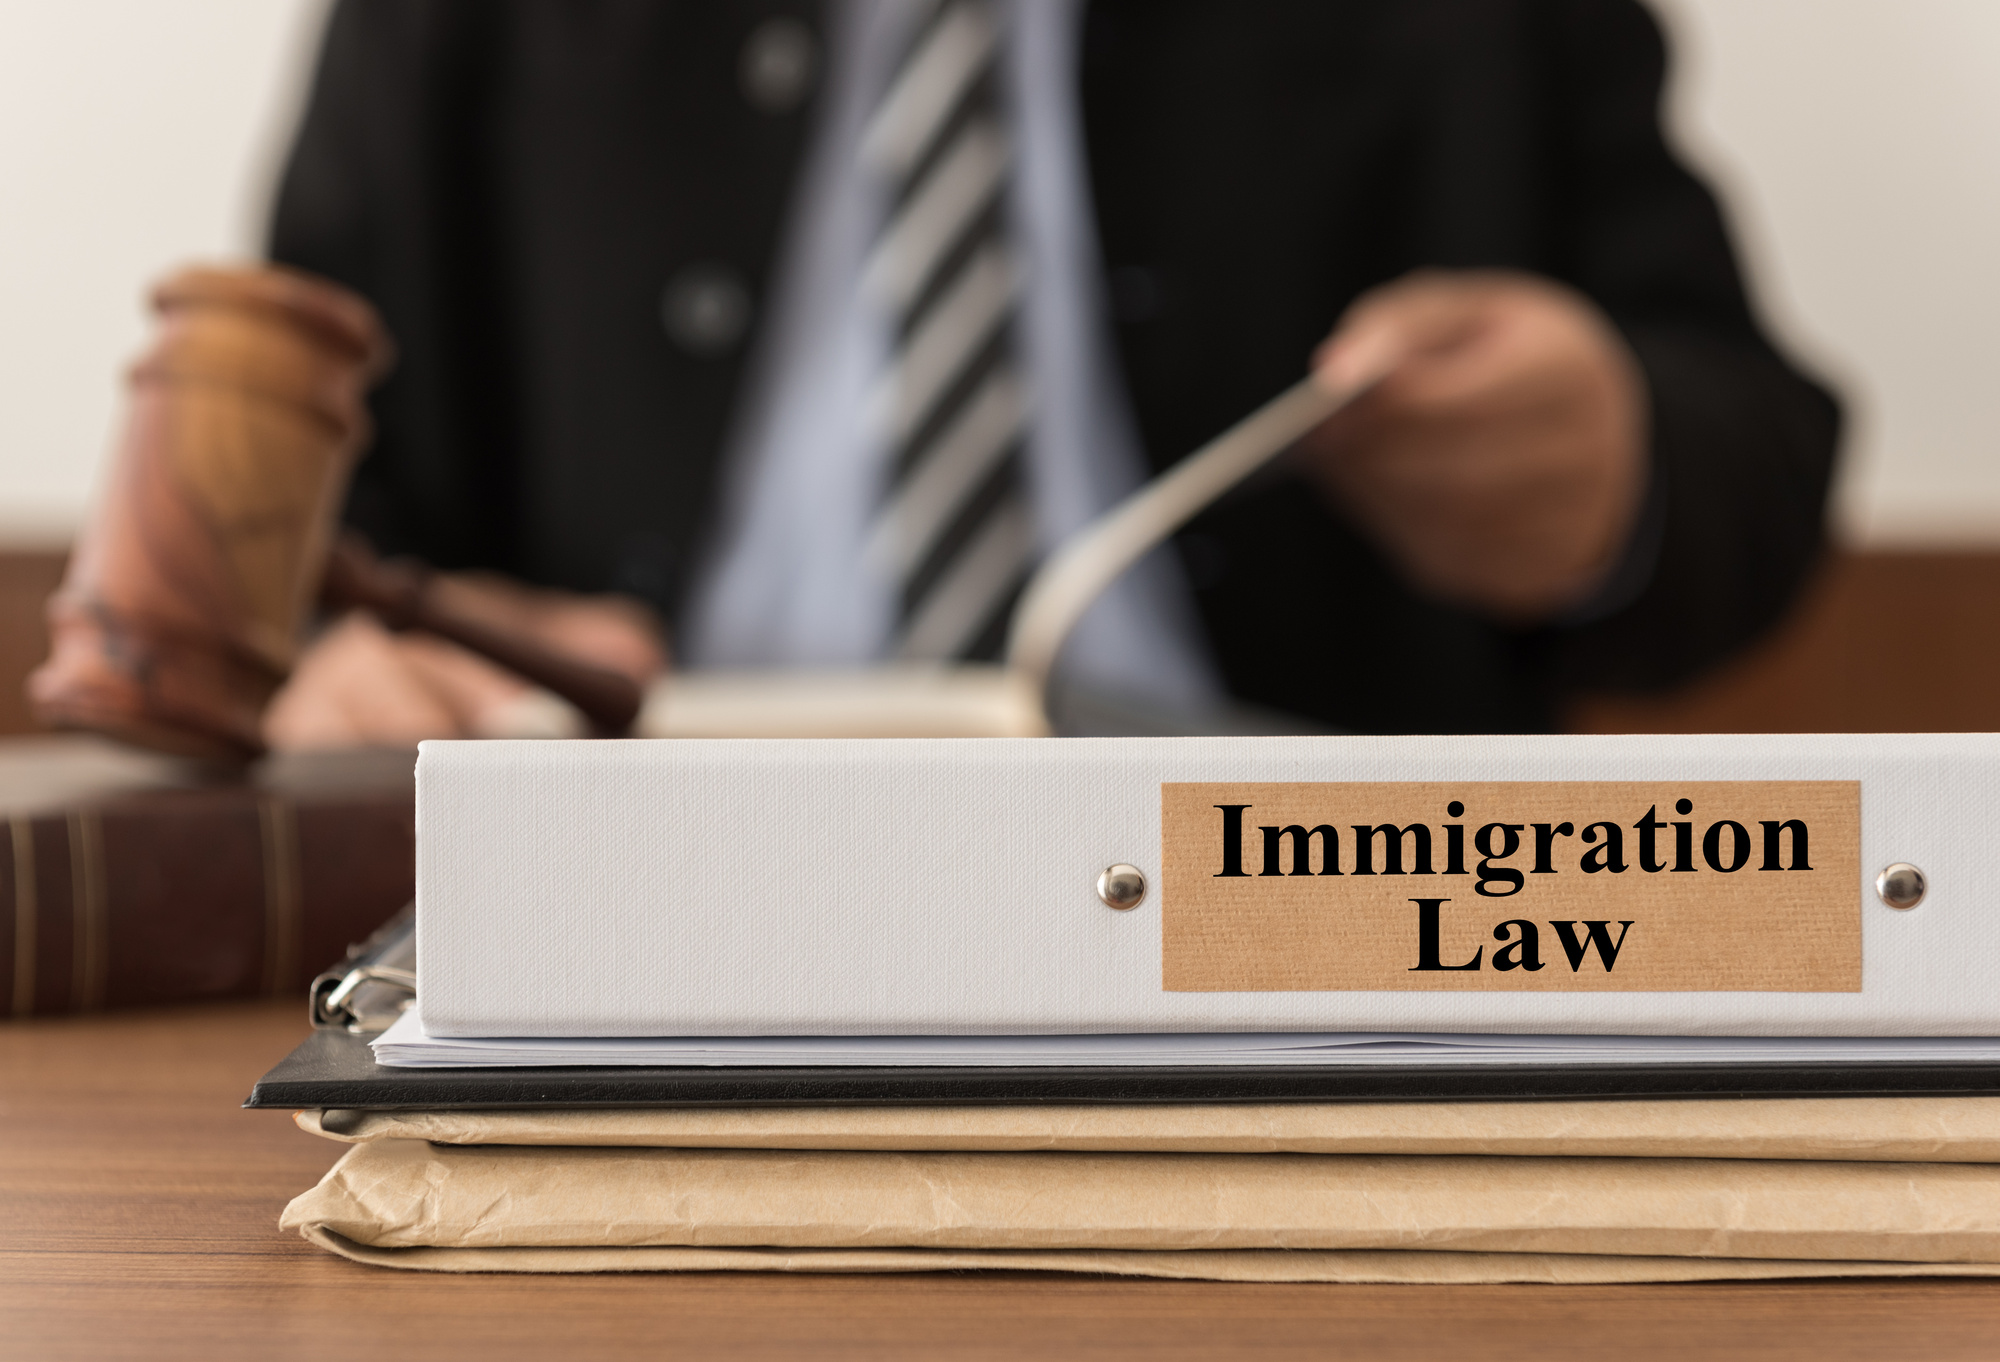 Tampa immigration lawyer reasons to hire a tampa immigration lawyer Reasons To Hire A Tampa Immigration Lawyer tampa immigration lawyer